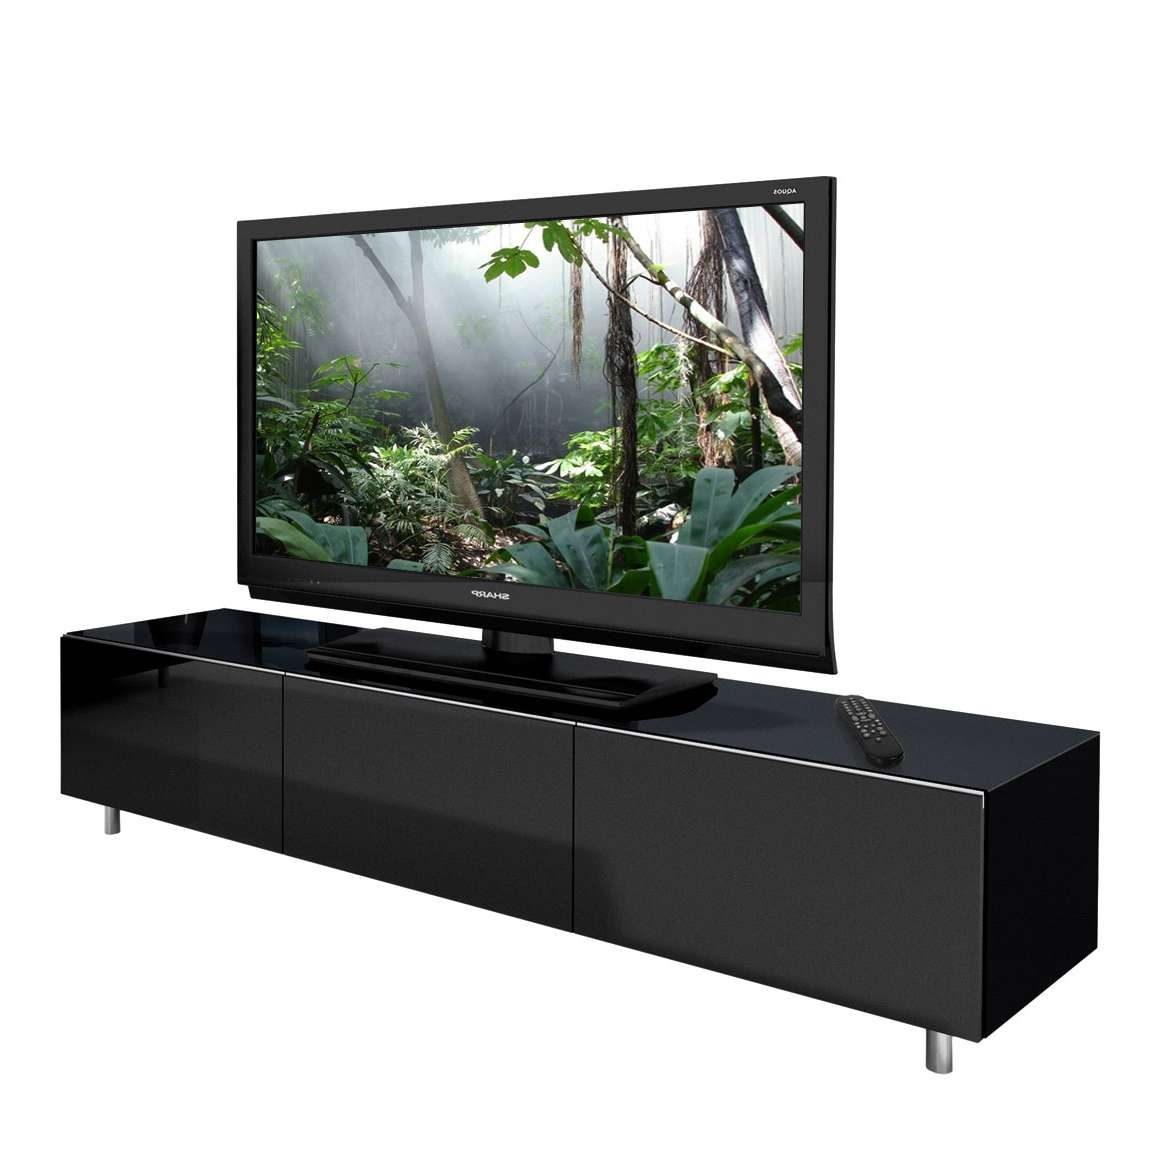 Just Racks Jrl1650 Gloss Black Tv Cabinet – Black Tv Stands Intended For Black Tv Stands (View 8 of 20)